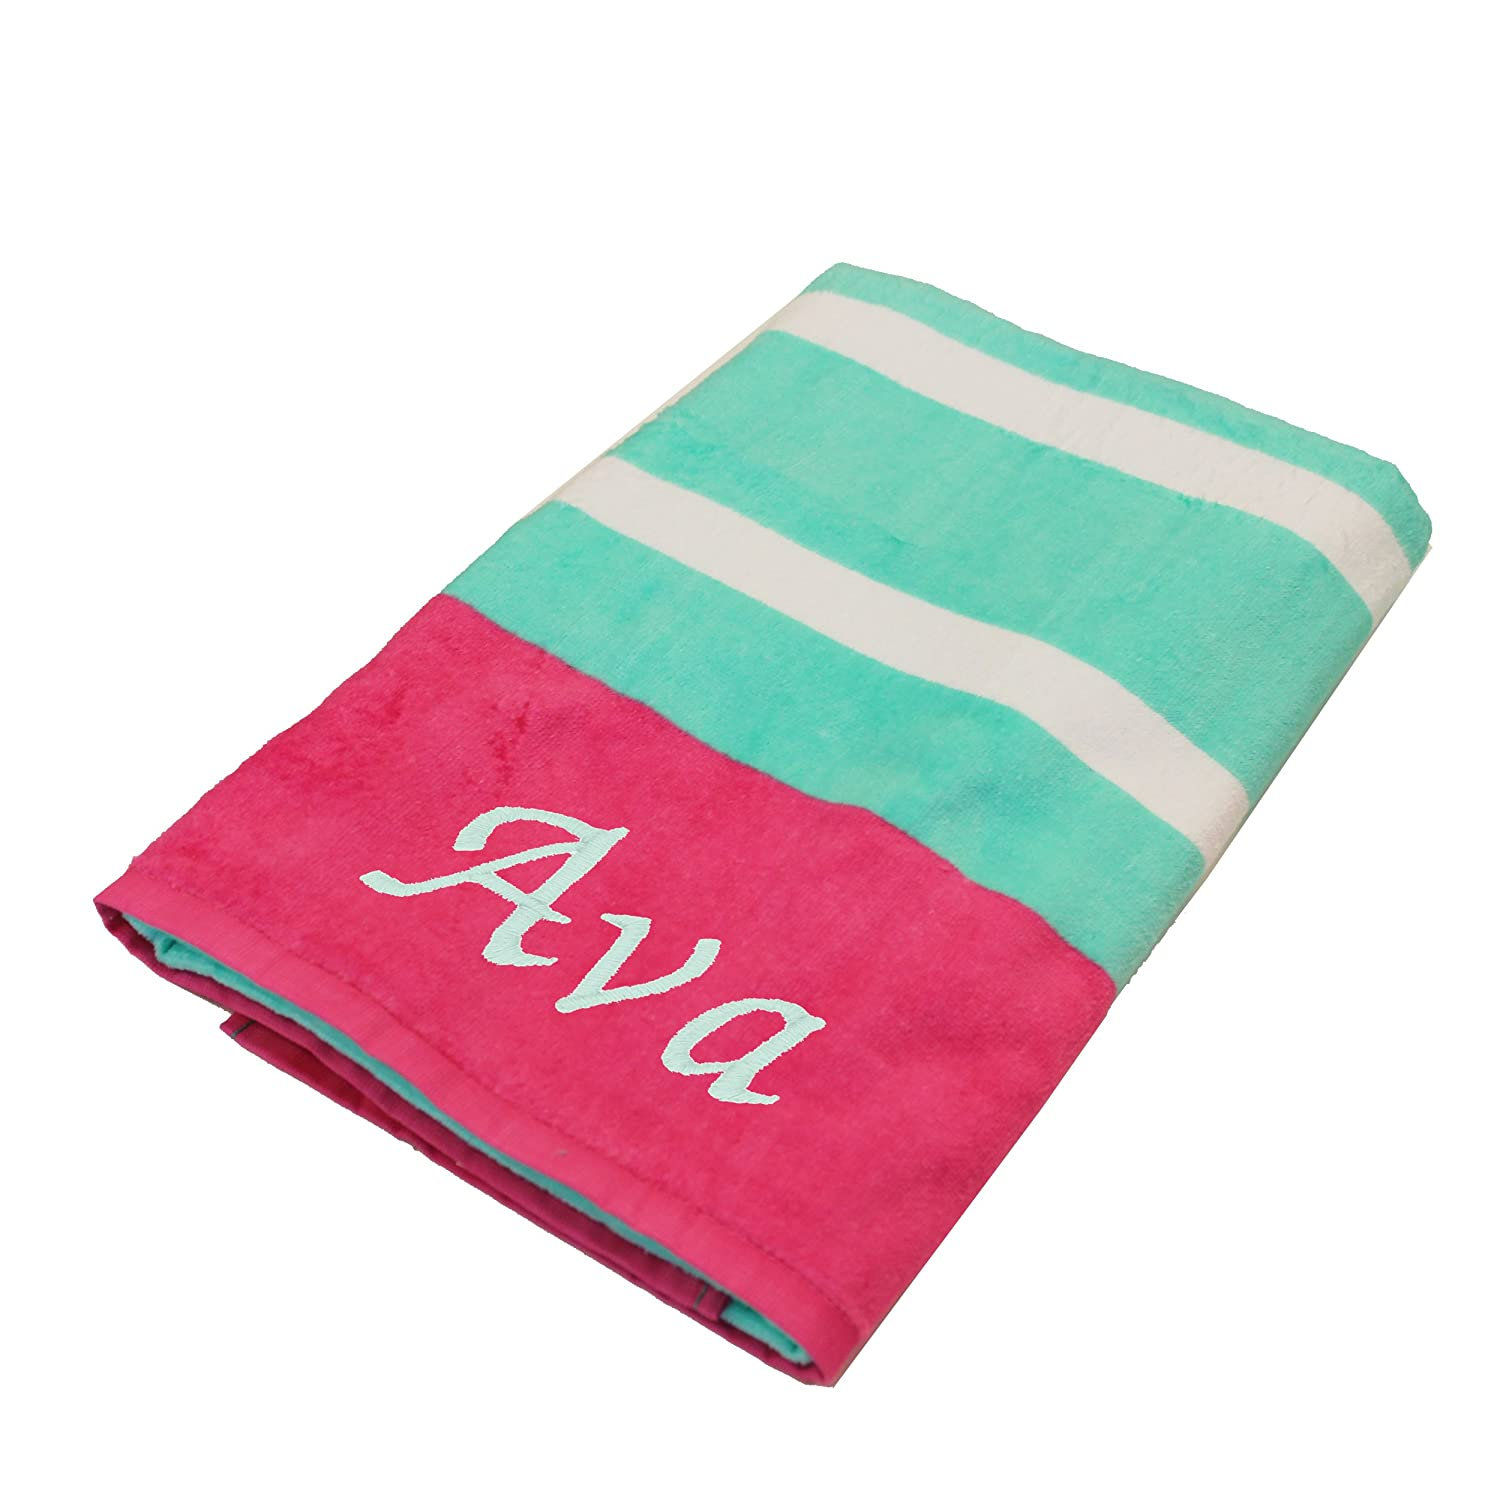 Personalized Beach Towels Monogrammed Gifts For Kids Her Him Custom Embroidered Towel Teal With Pink